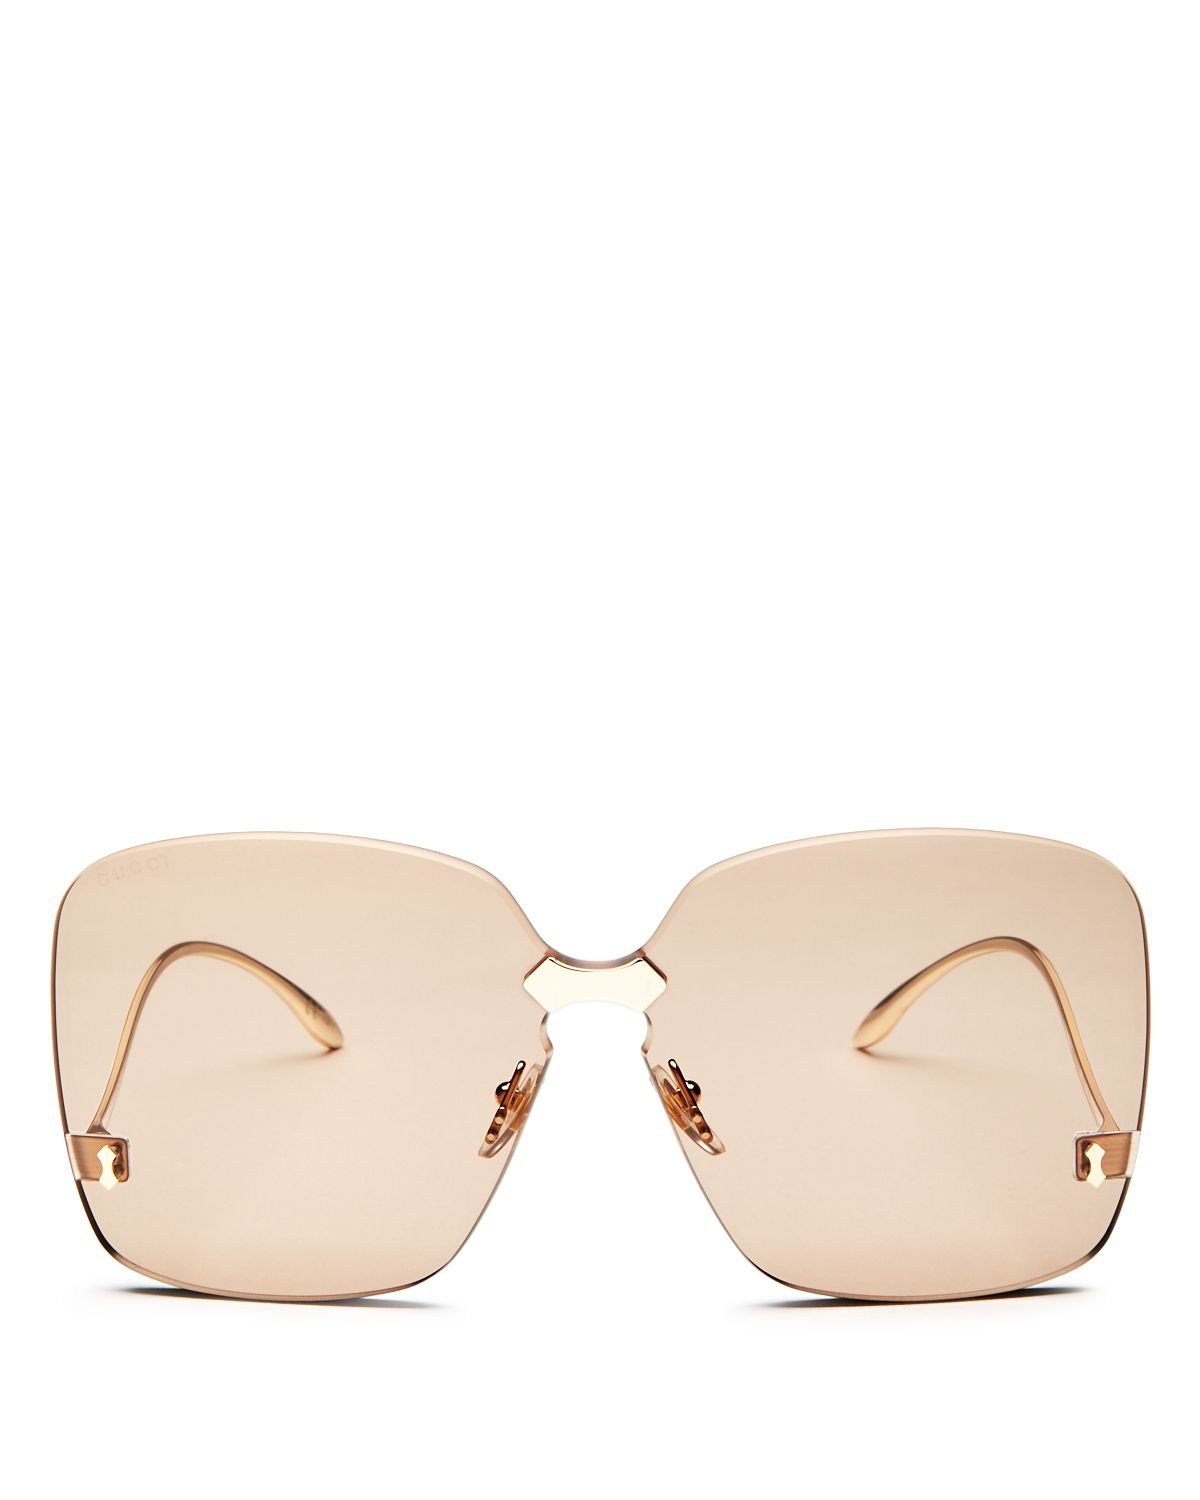 Oversized Rimless Square Sunglasses, 75mm by Gucci